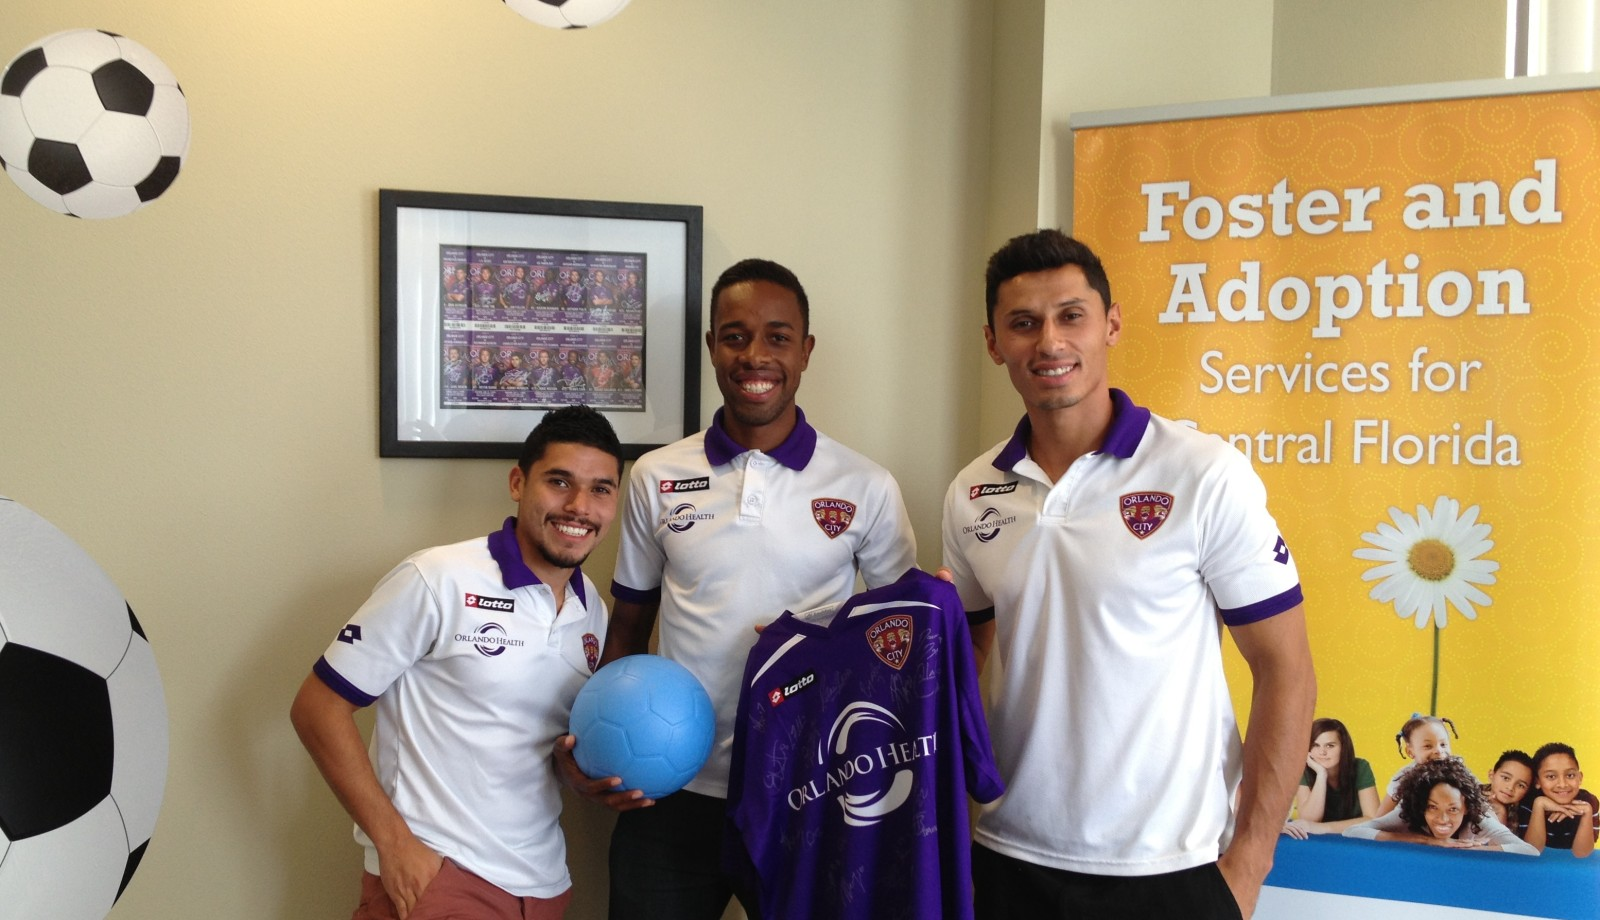 Orlando Open City Foster Care Center